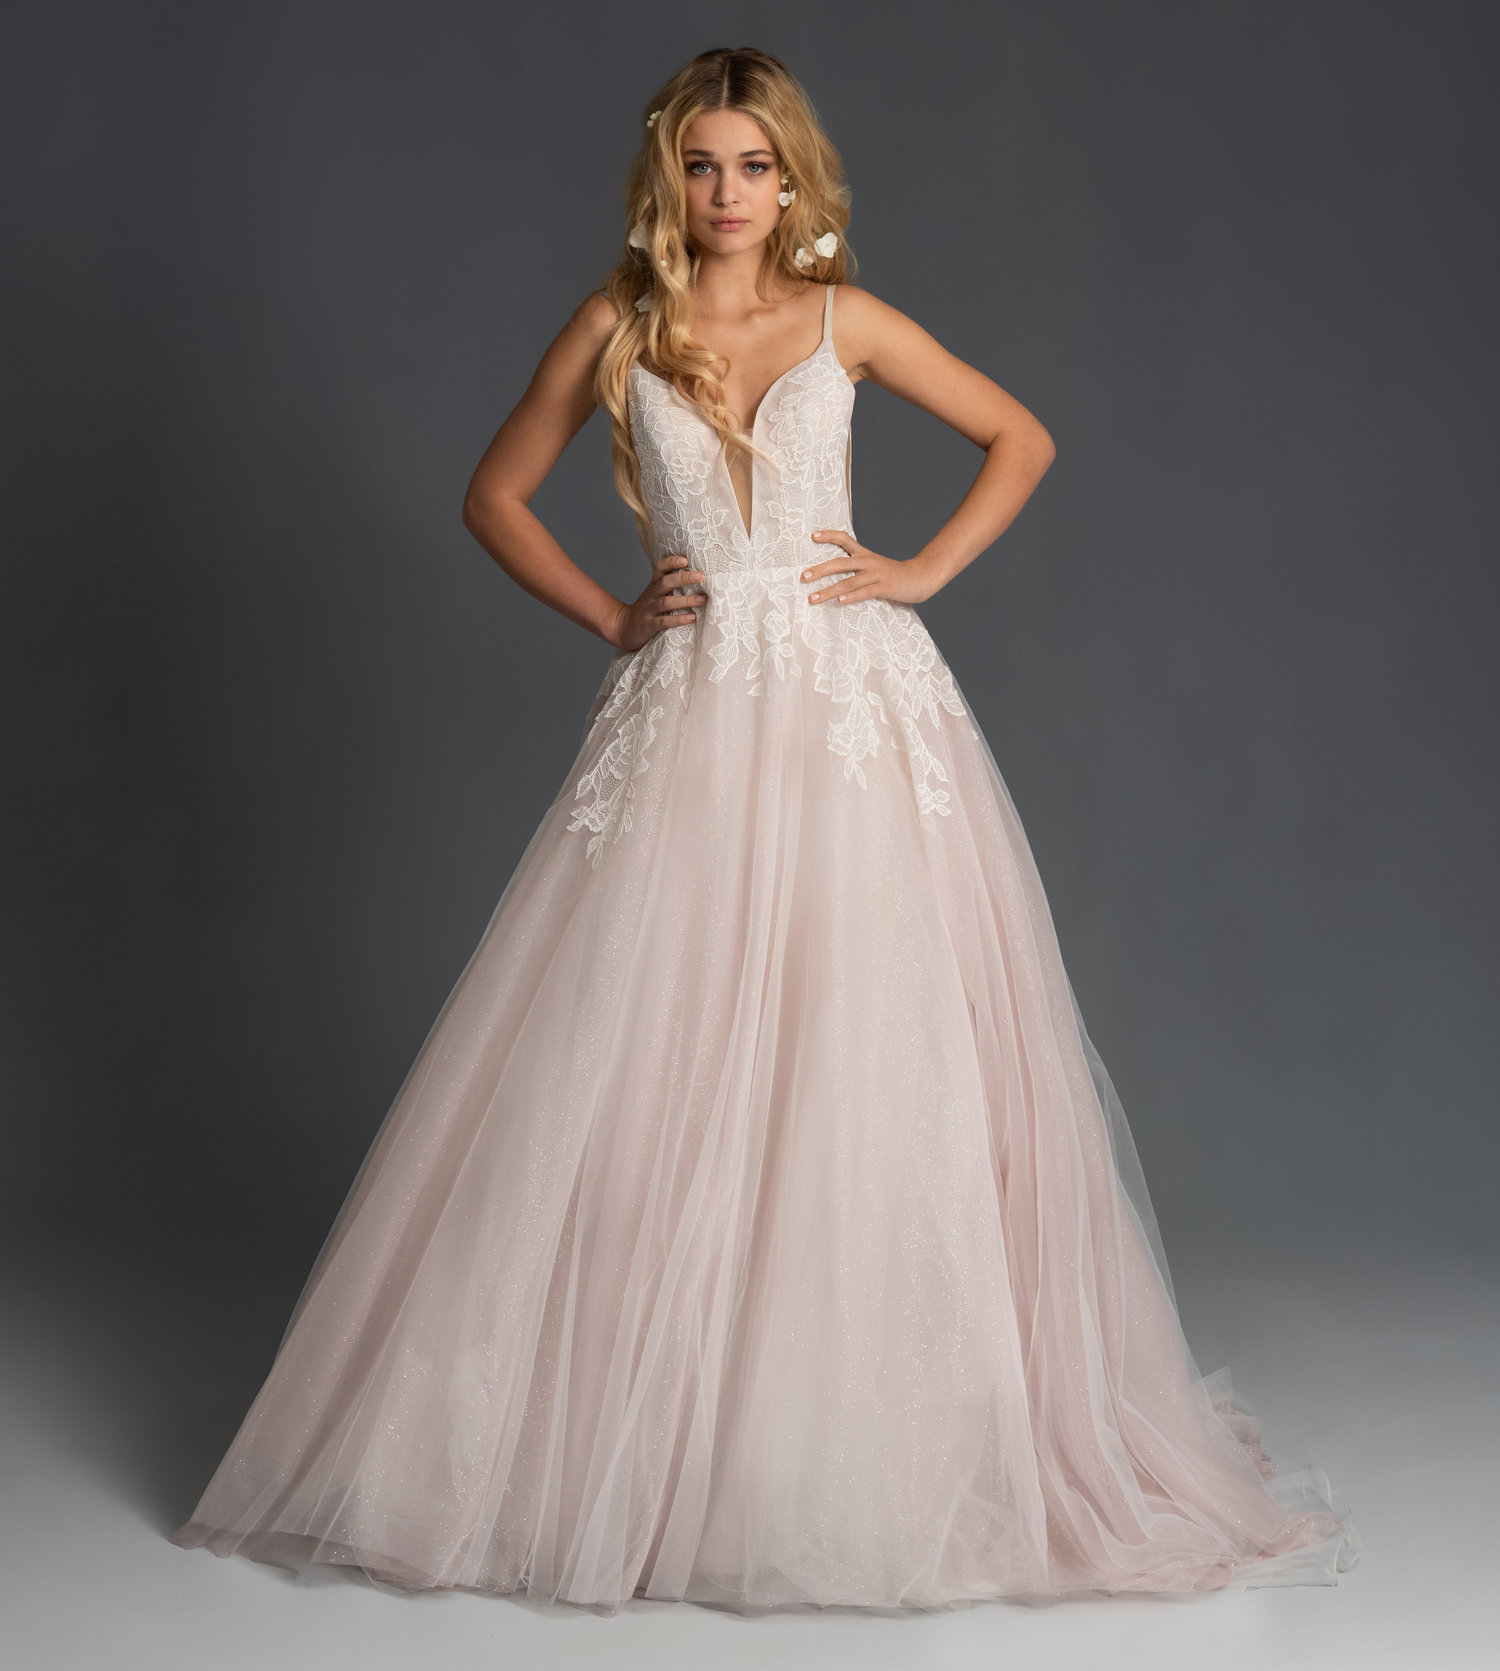 Lazaro Bridal Wedding Dress Collection Fall 2020: JLM Couture Debuts New Bridal Collections For Fall 2019